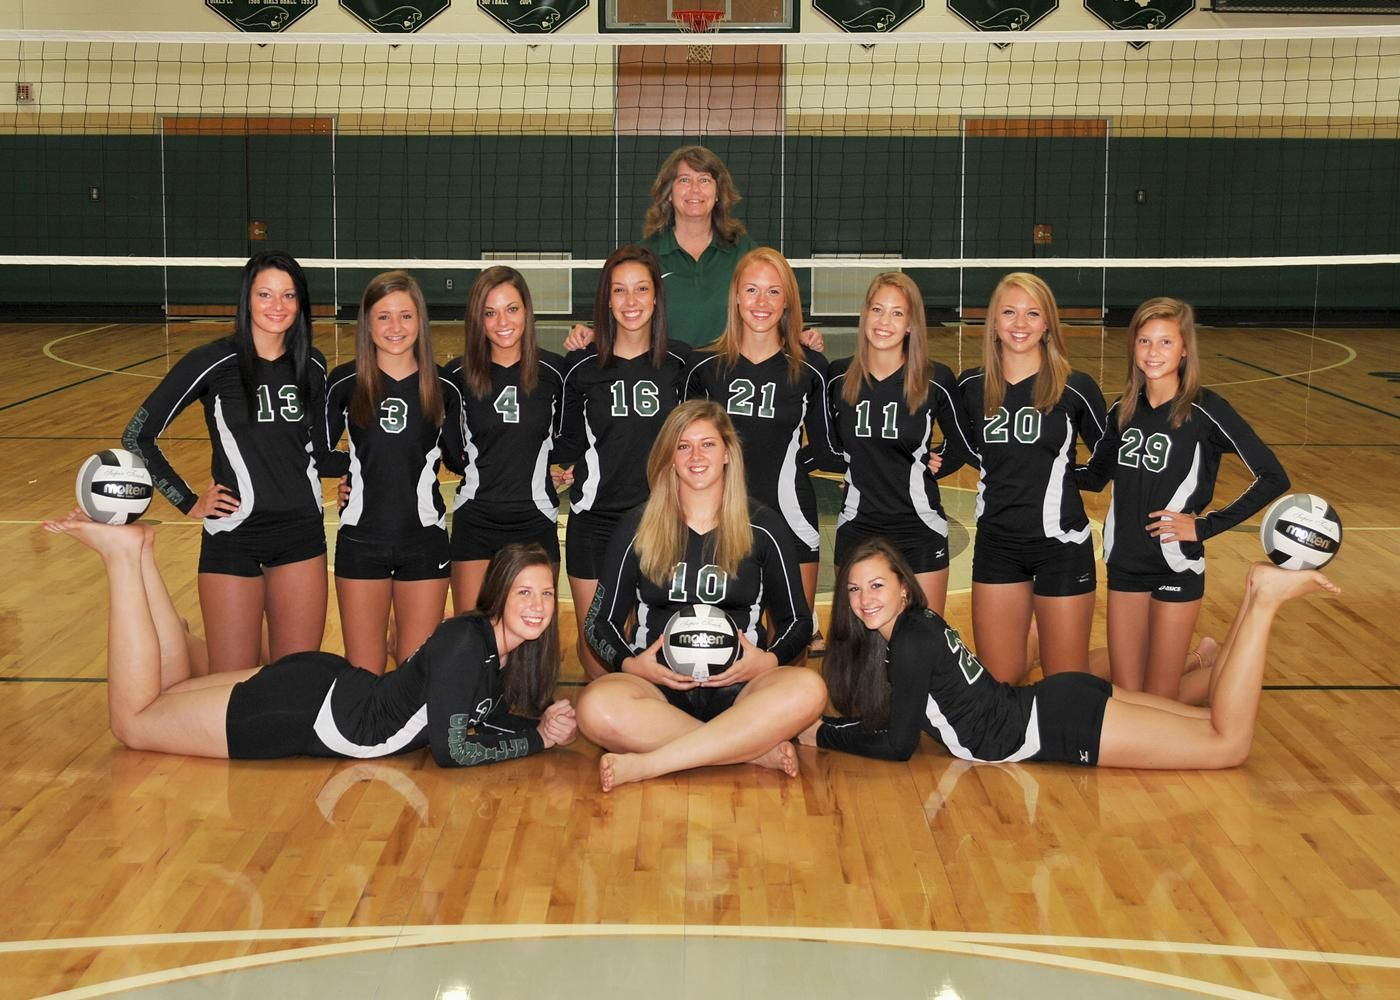 Volleyball Team Pictures Google Search Volleyball Team Pictures Basketball Team Pictures Volleyball Team Photos